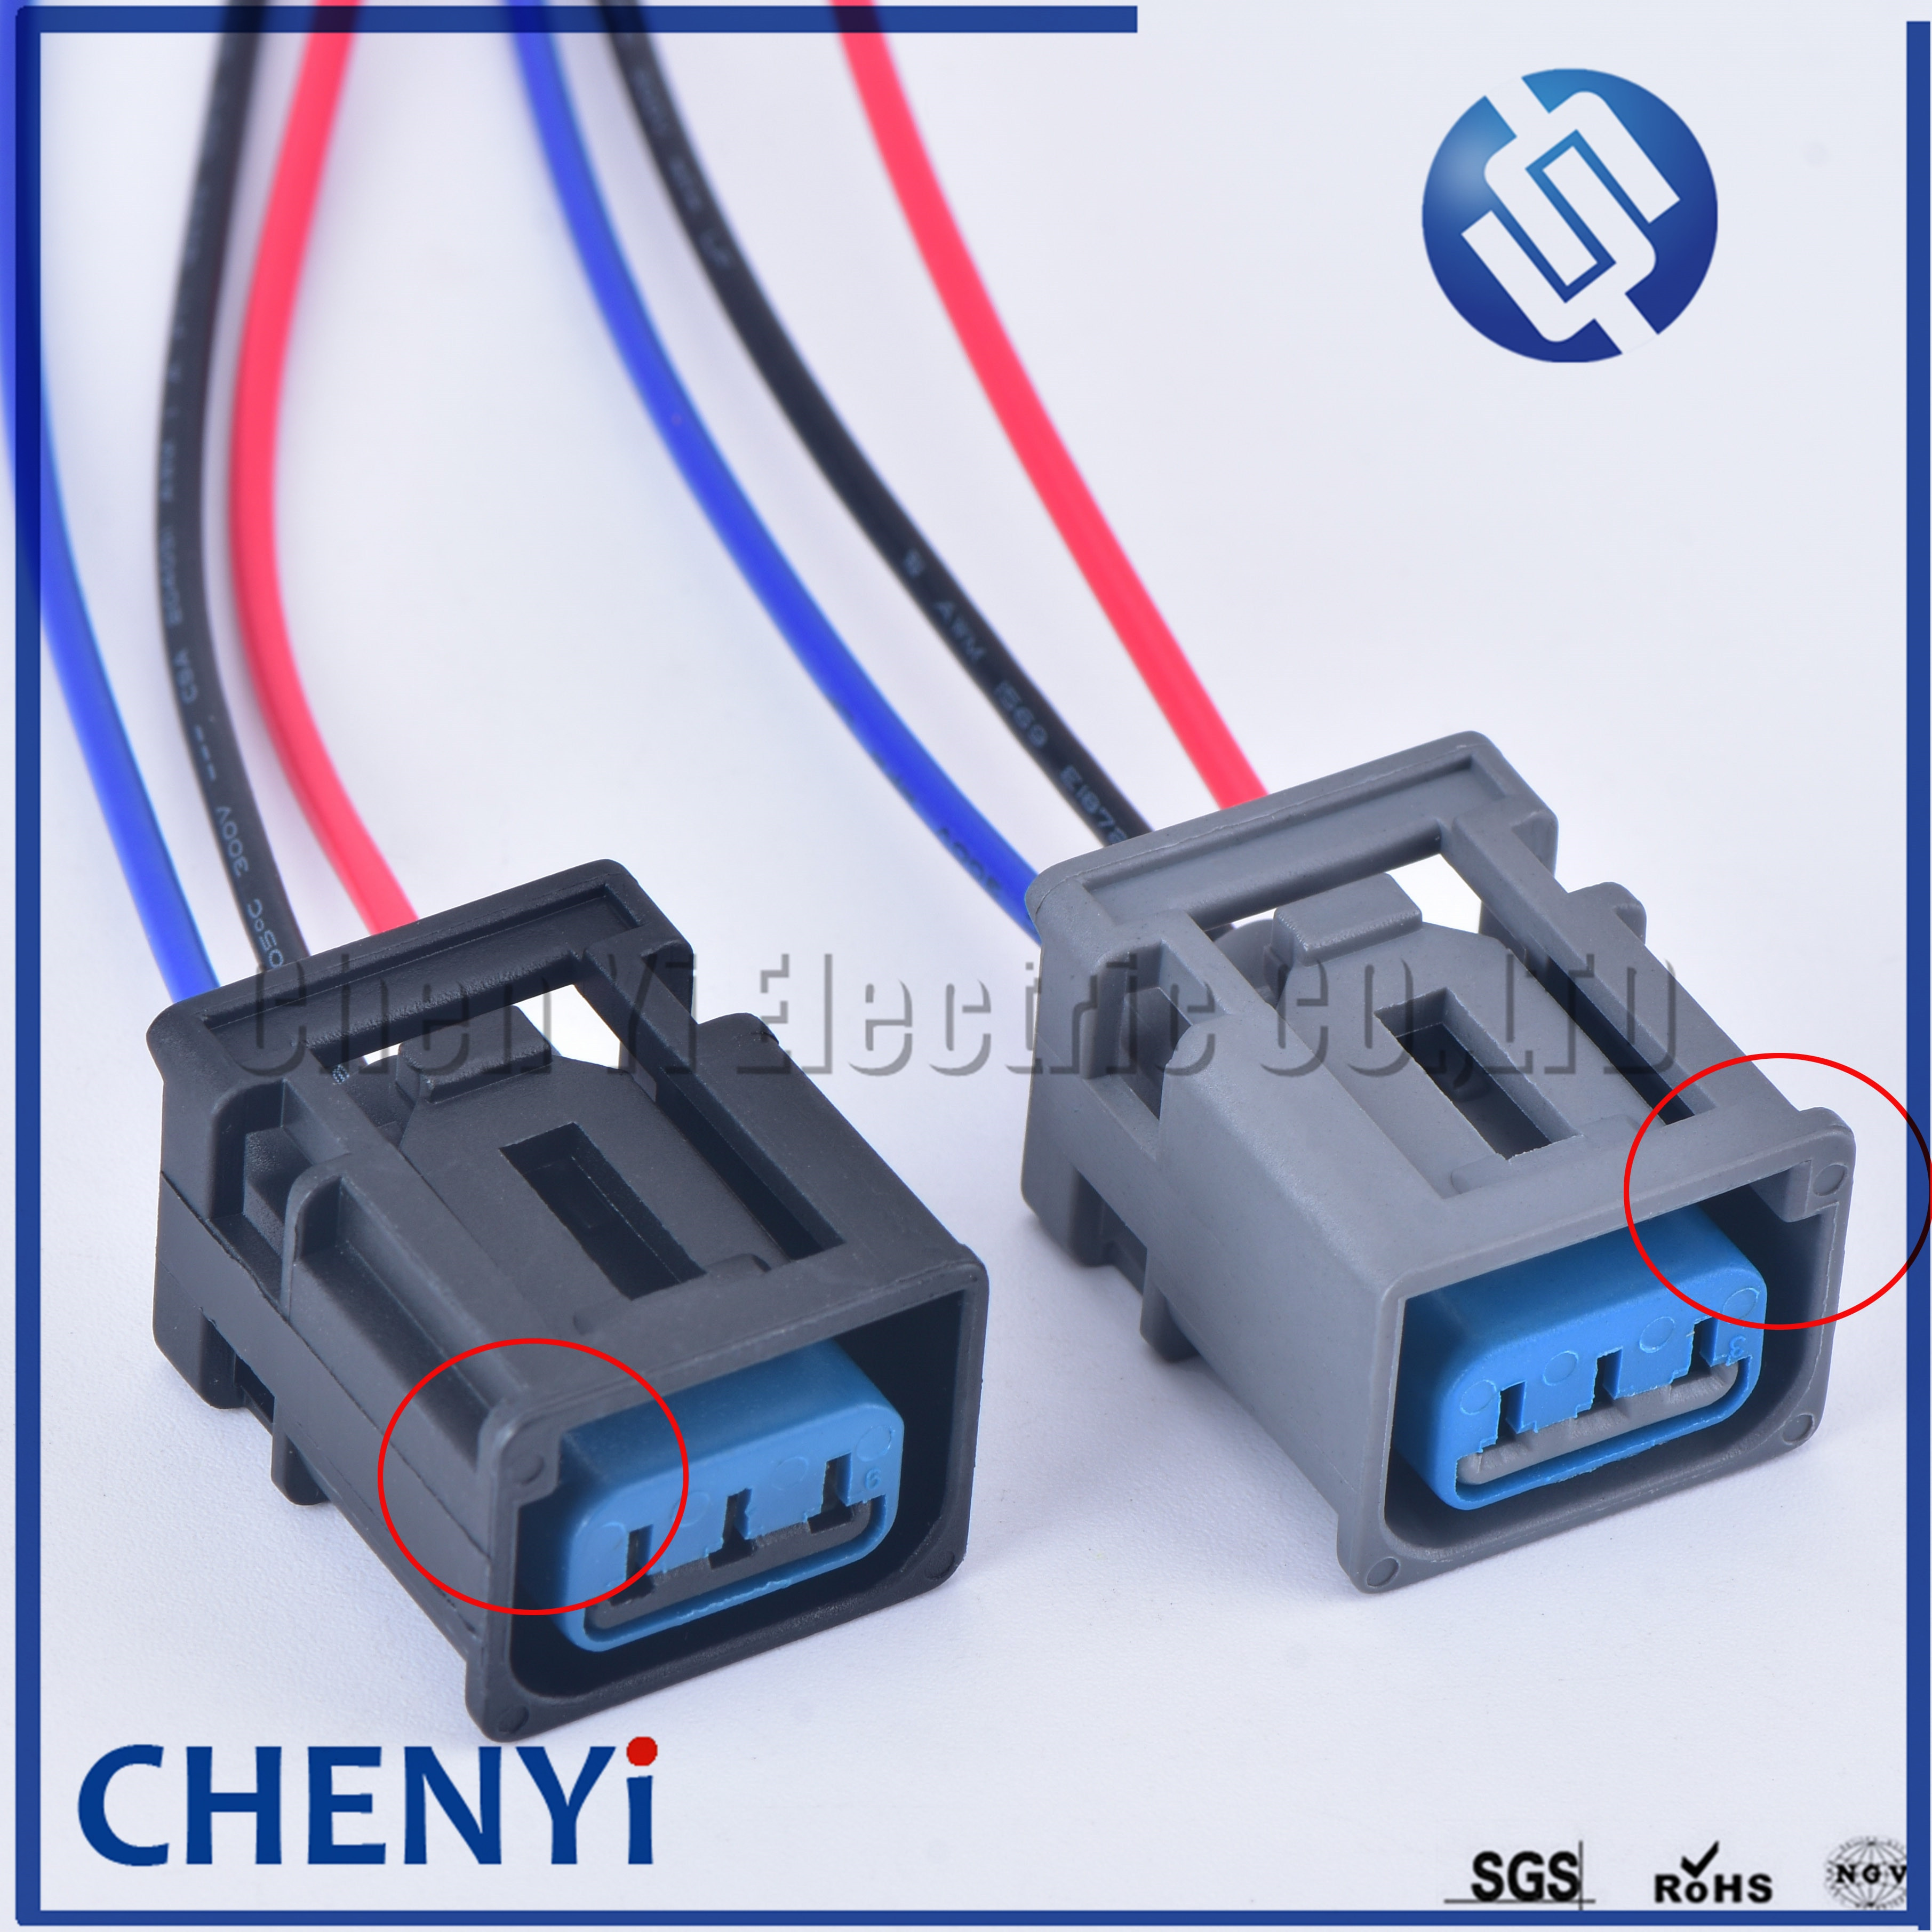 1kits lot 7pin 1930 0958 high voltage ignition coil plug connector for gm opel astra j chevrolet mai rui bao ke luzi buick 3 Pin 2.2mm Ignition Coil High Voltage Connector Plug For Ford Focus COIL Honda 1W7T-14A464-MA left and right groove with wire